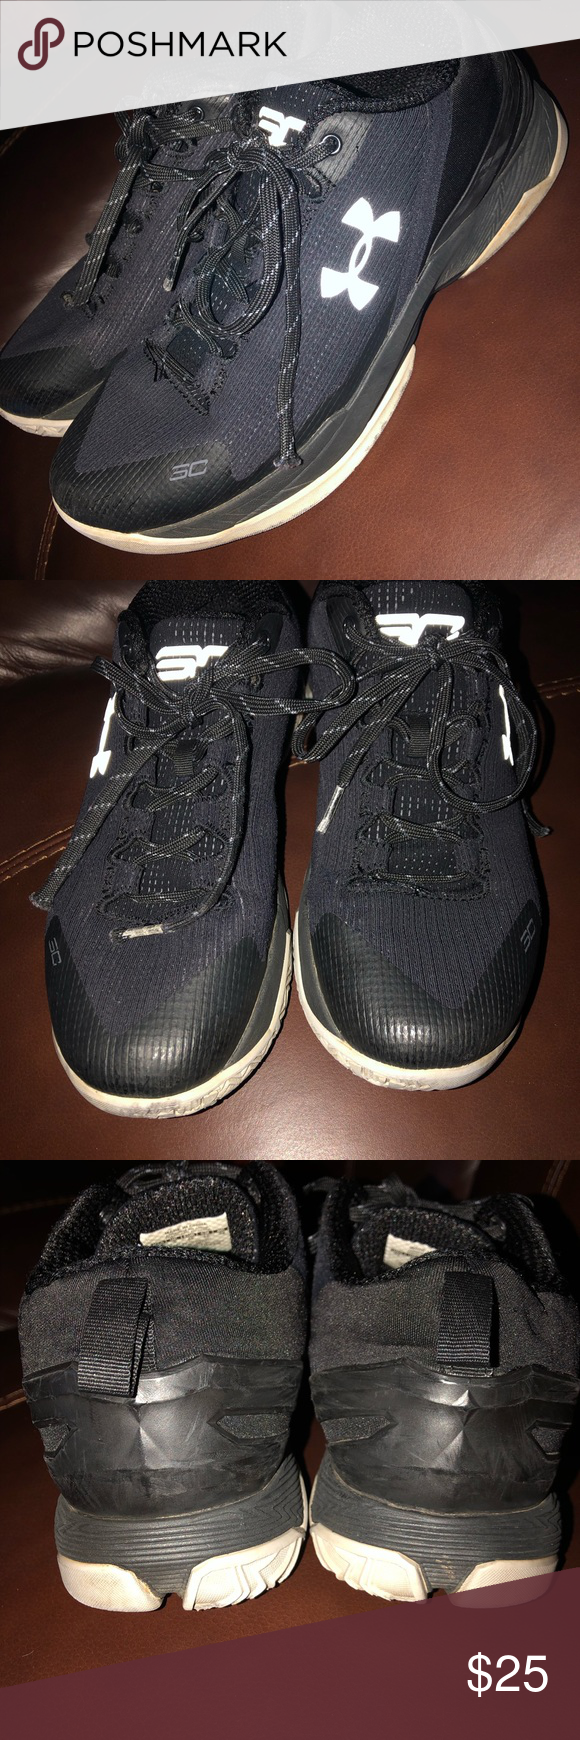 Under armour tennis shoes (With images